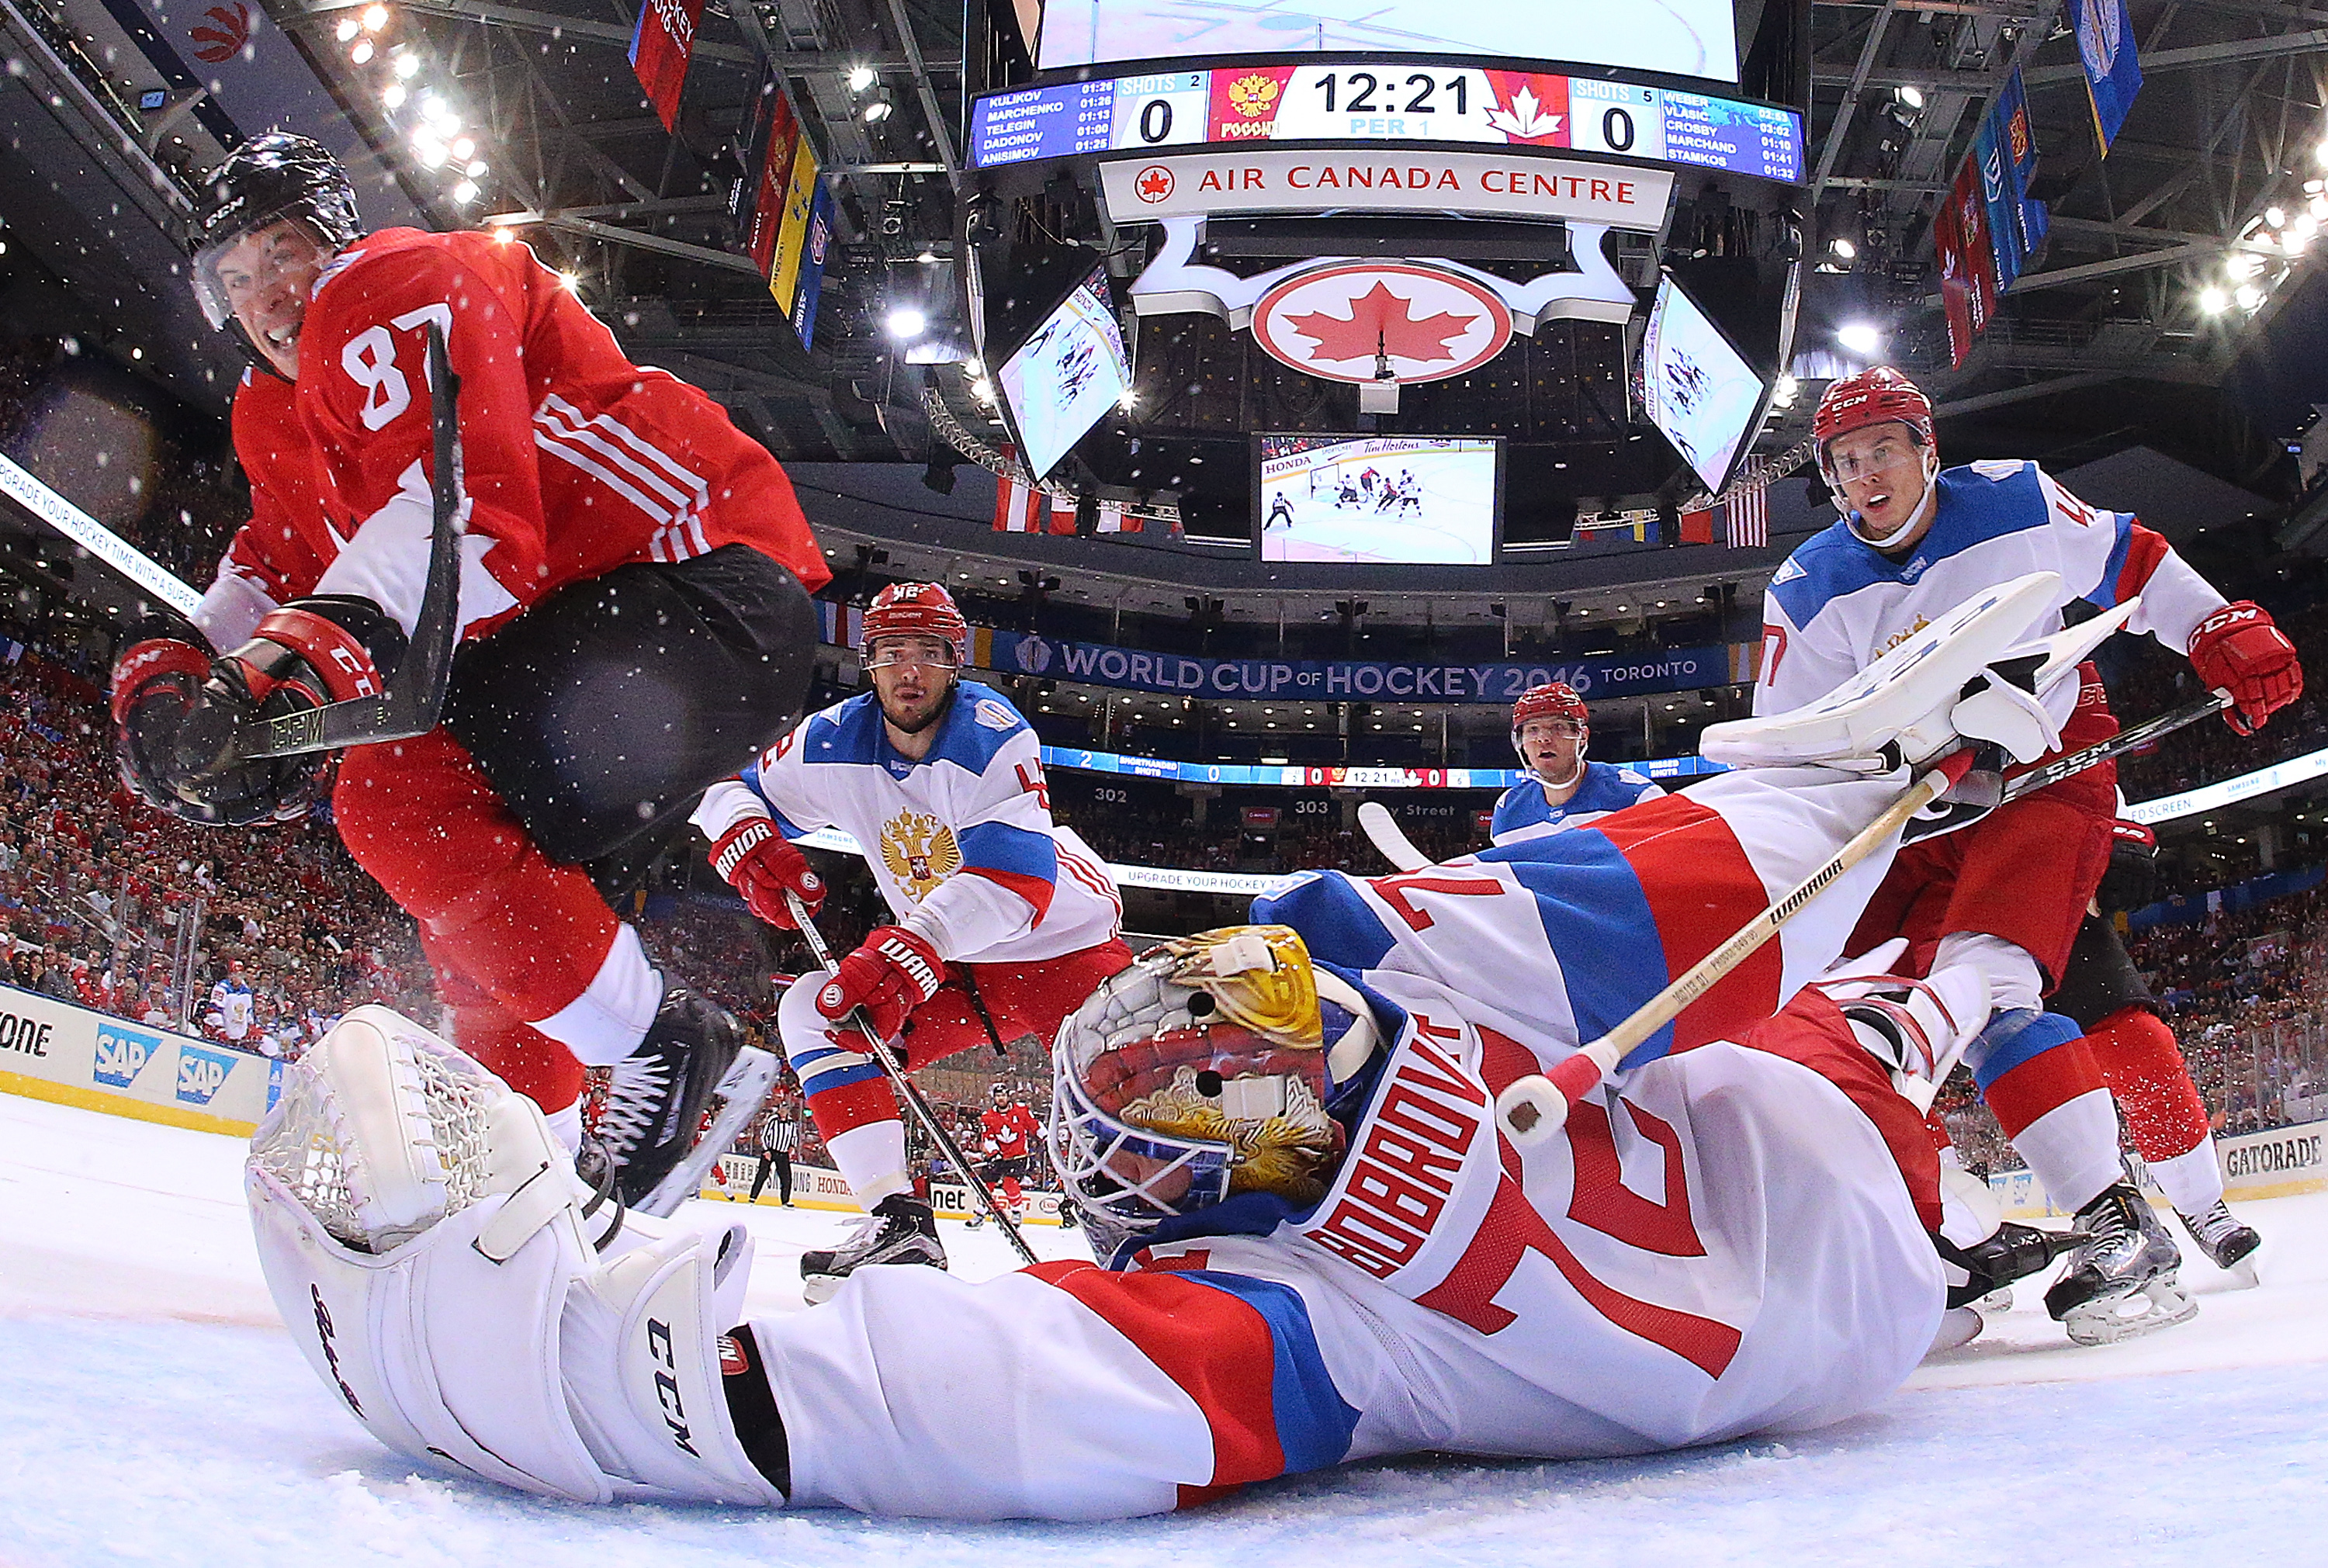 Canada beats Russia 5-3, advances to World Cup finals